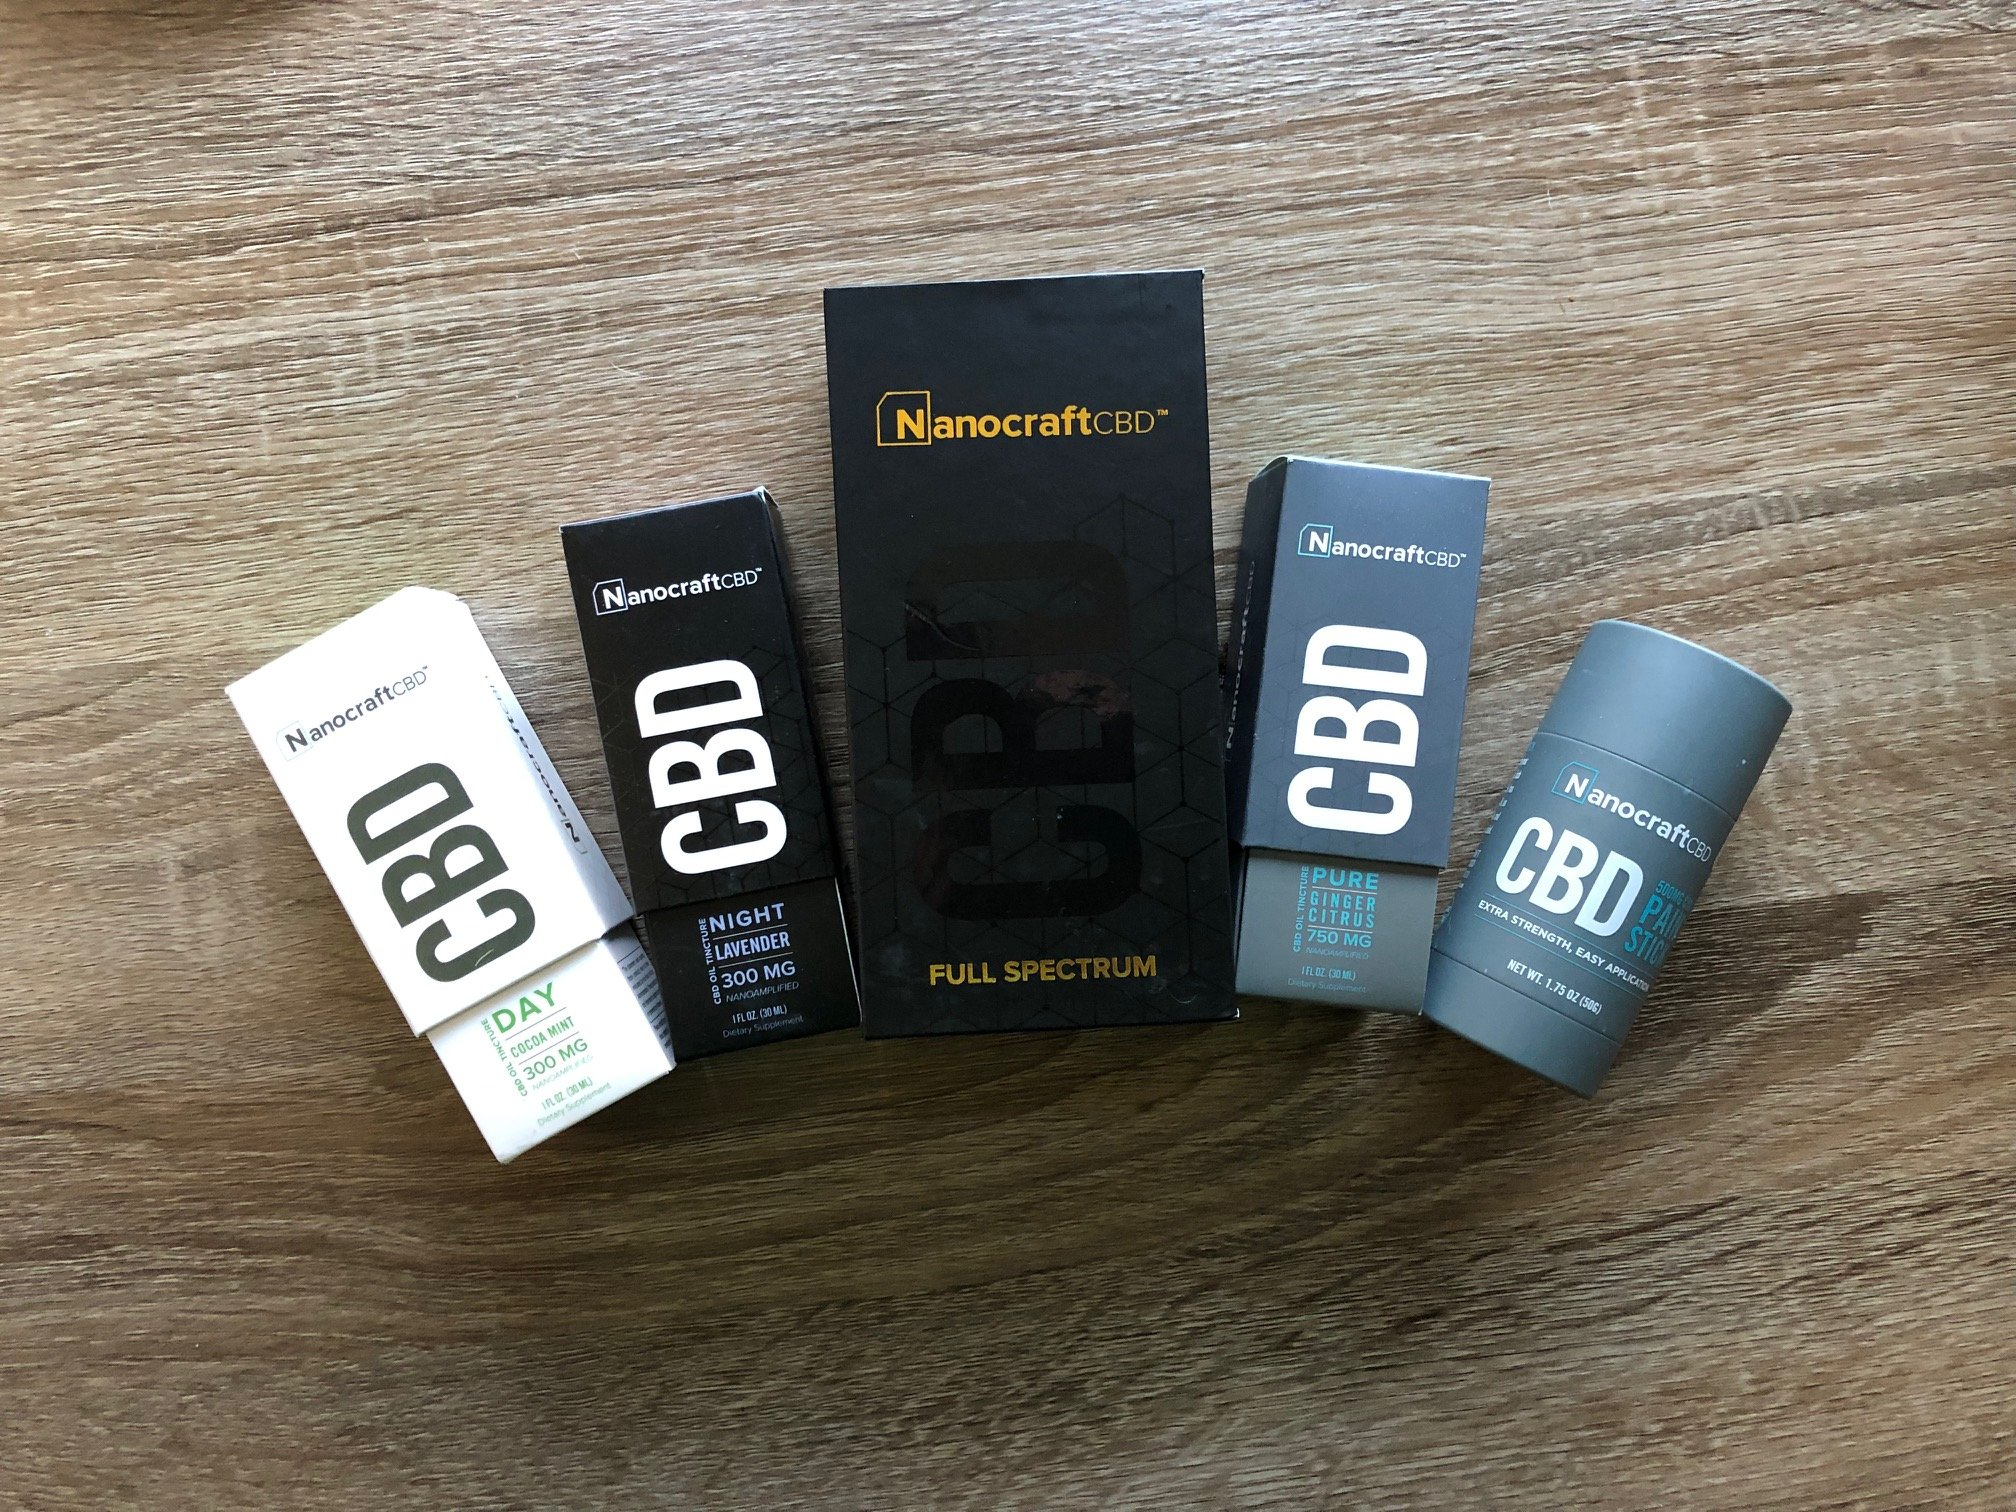 several nanocraft cbd products placed neatly next to each other on a table